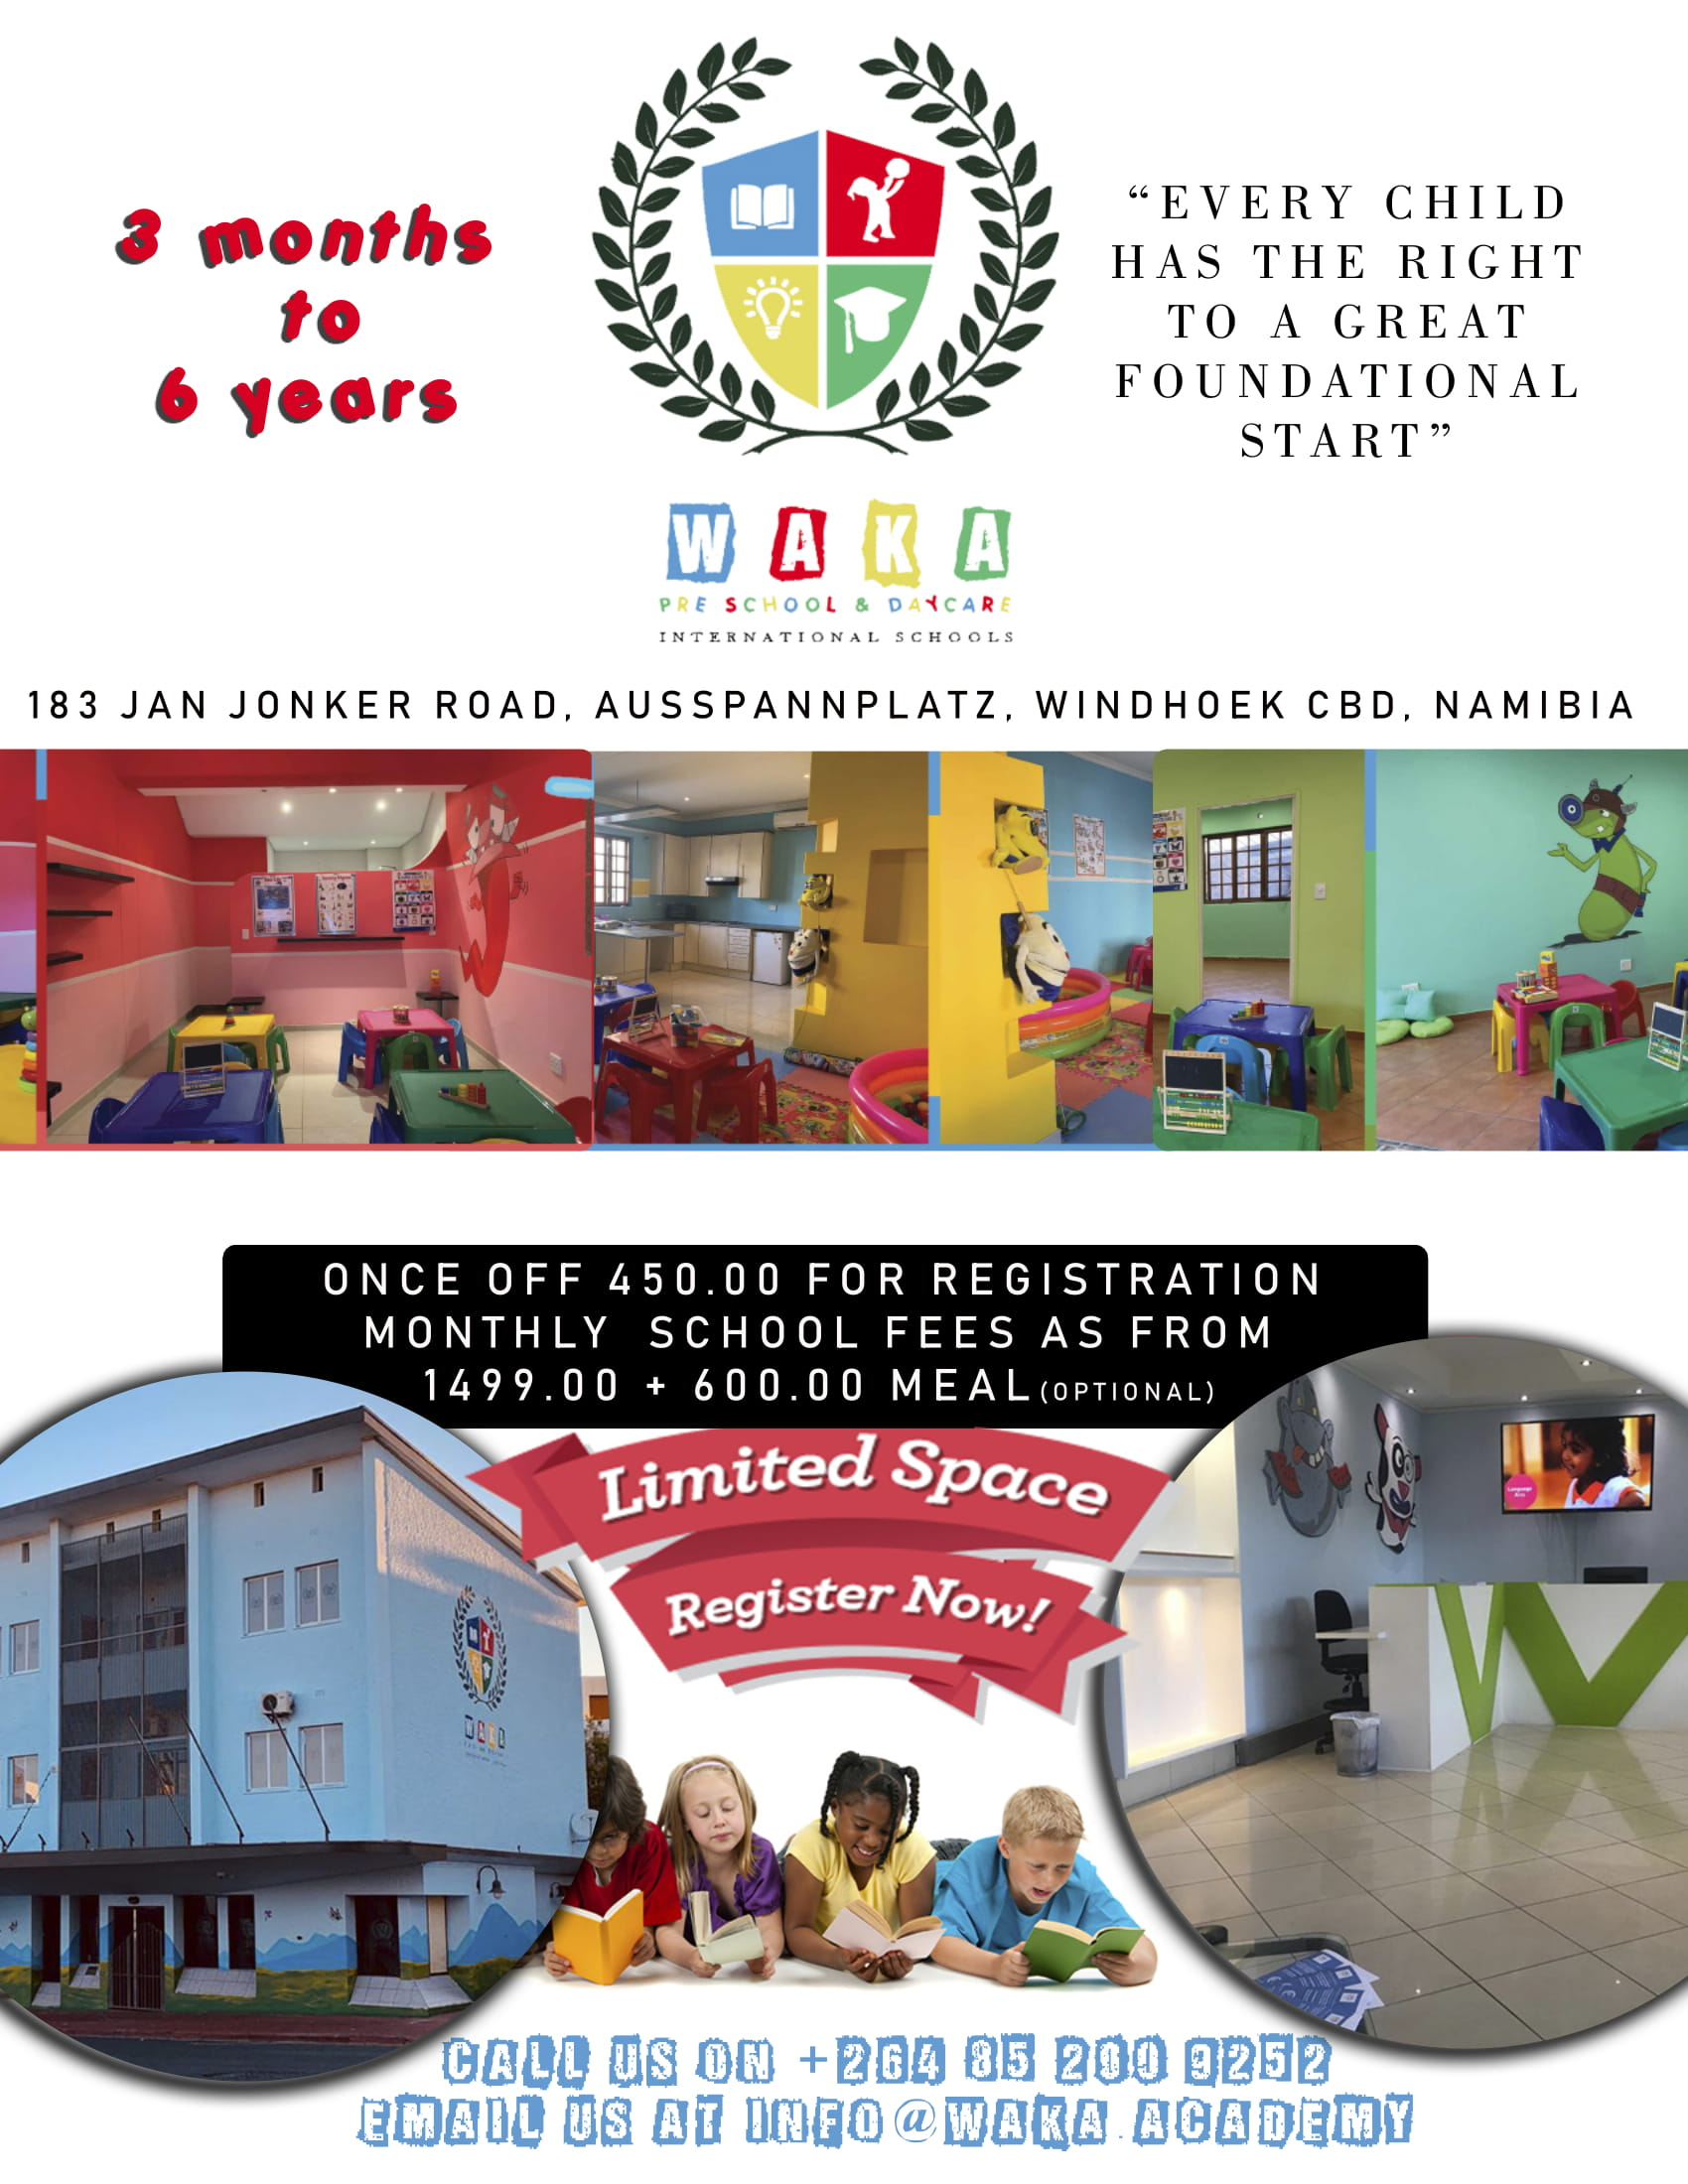 Waka International School